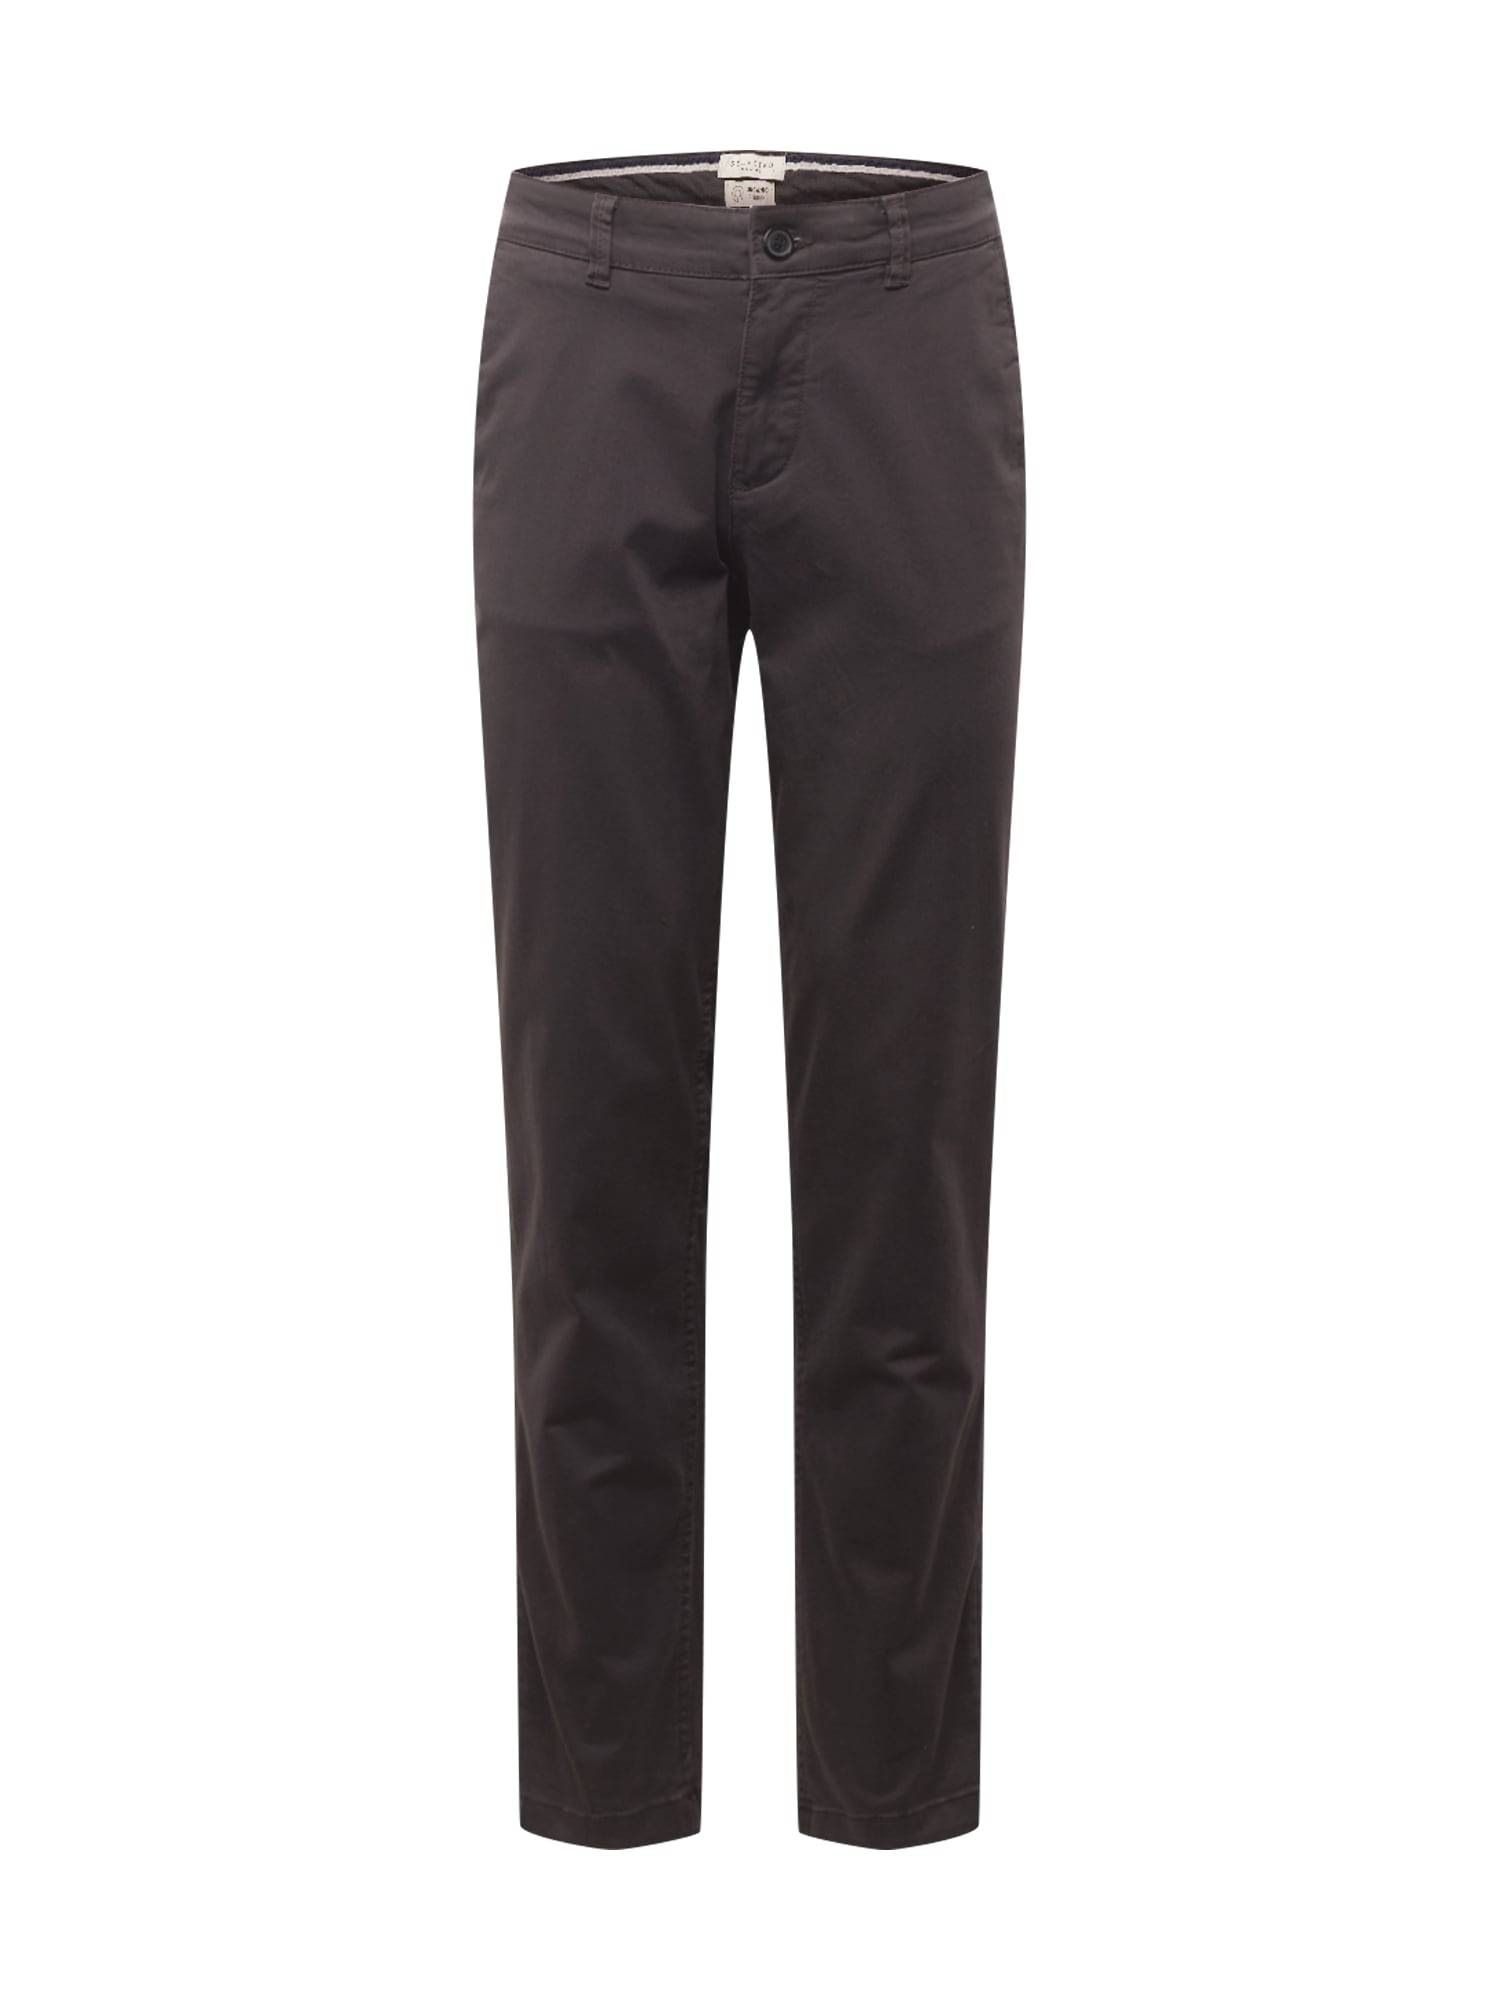 SELECTED HOMME Pantalon chino 'NEW PARIS'  - Gris - Taille: 31 - male